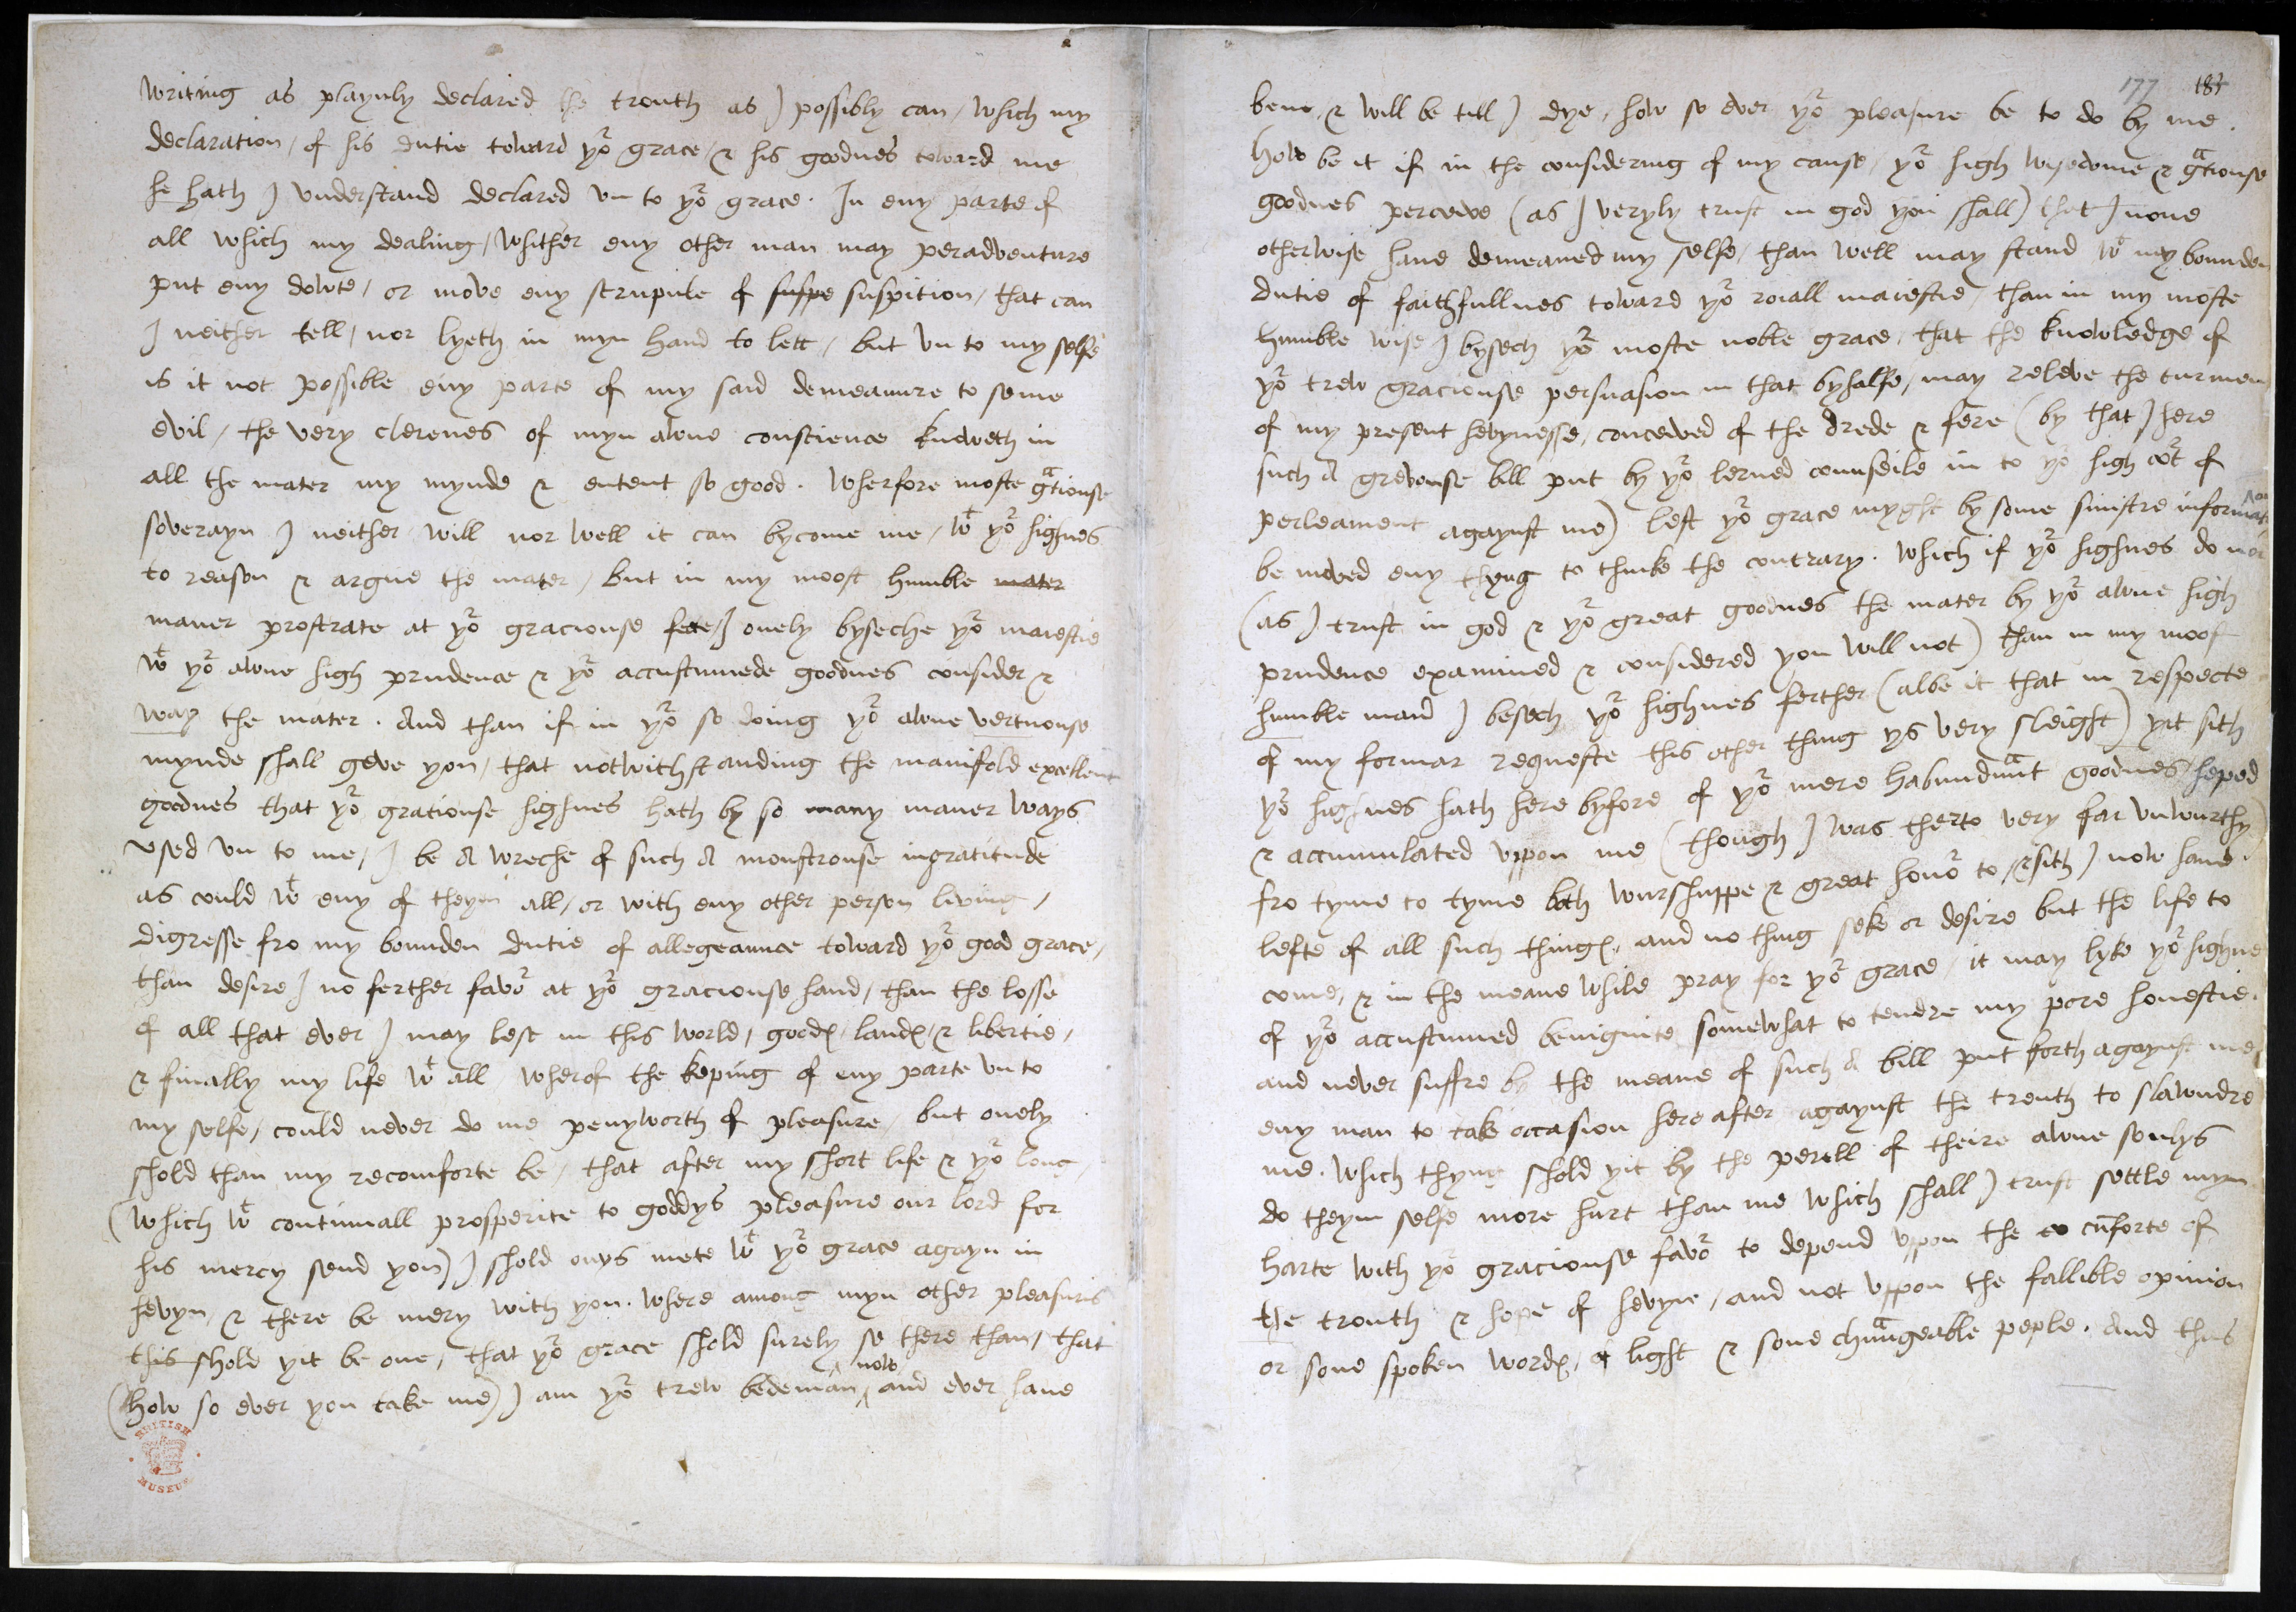 Last letter of Sir Thomas More to Henry VIII